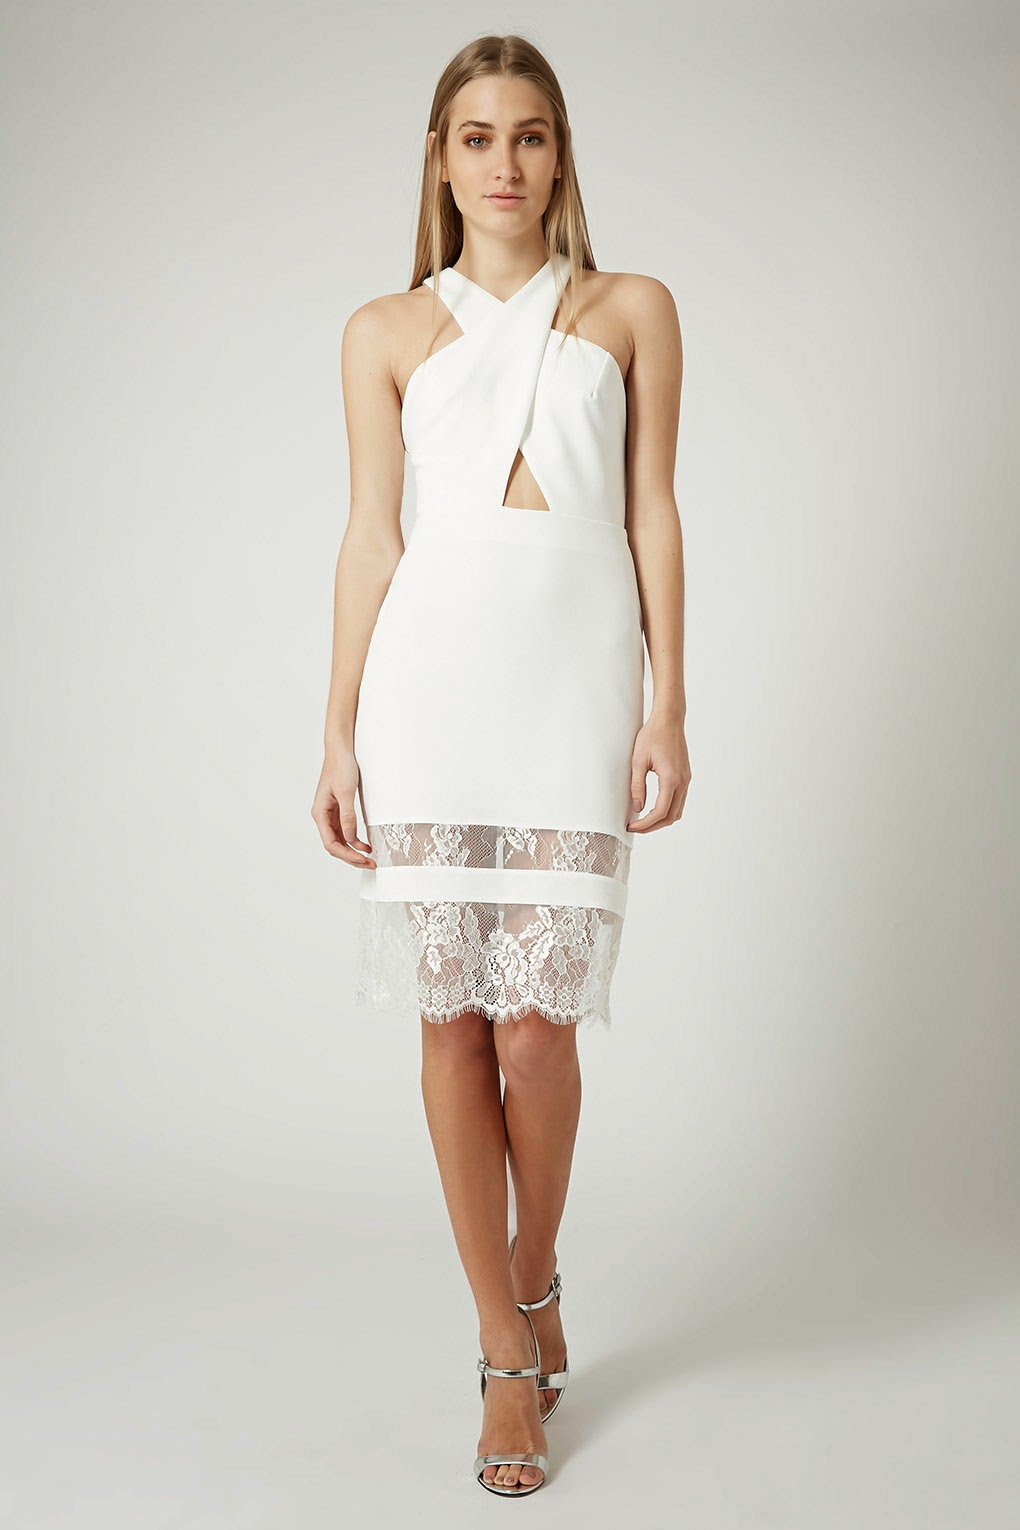 topshop white crossover dress, halter neck dress with lace,